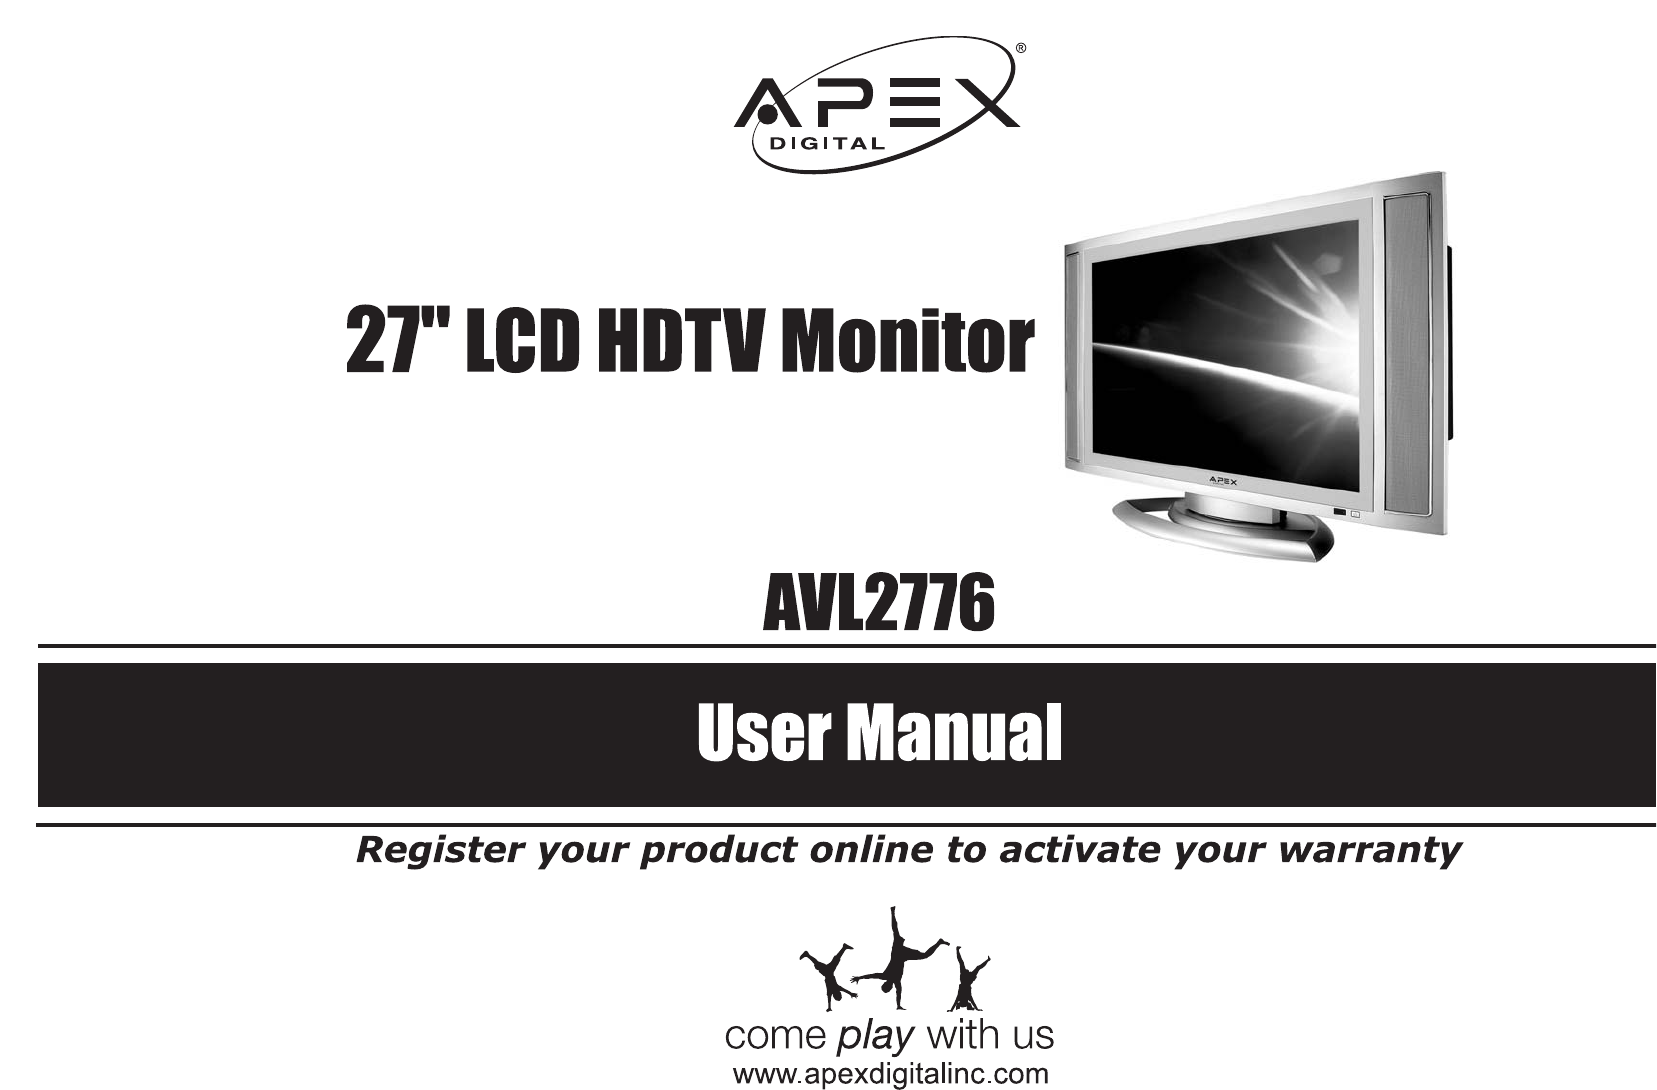 apex digital flat panel television avl2776 user guide rh tv manualsonline com Apex Digital Remote Apex Digital DVD Player